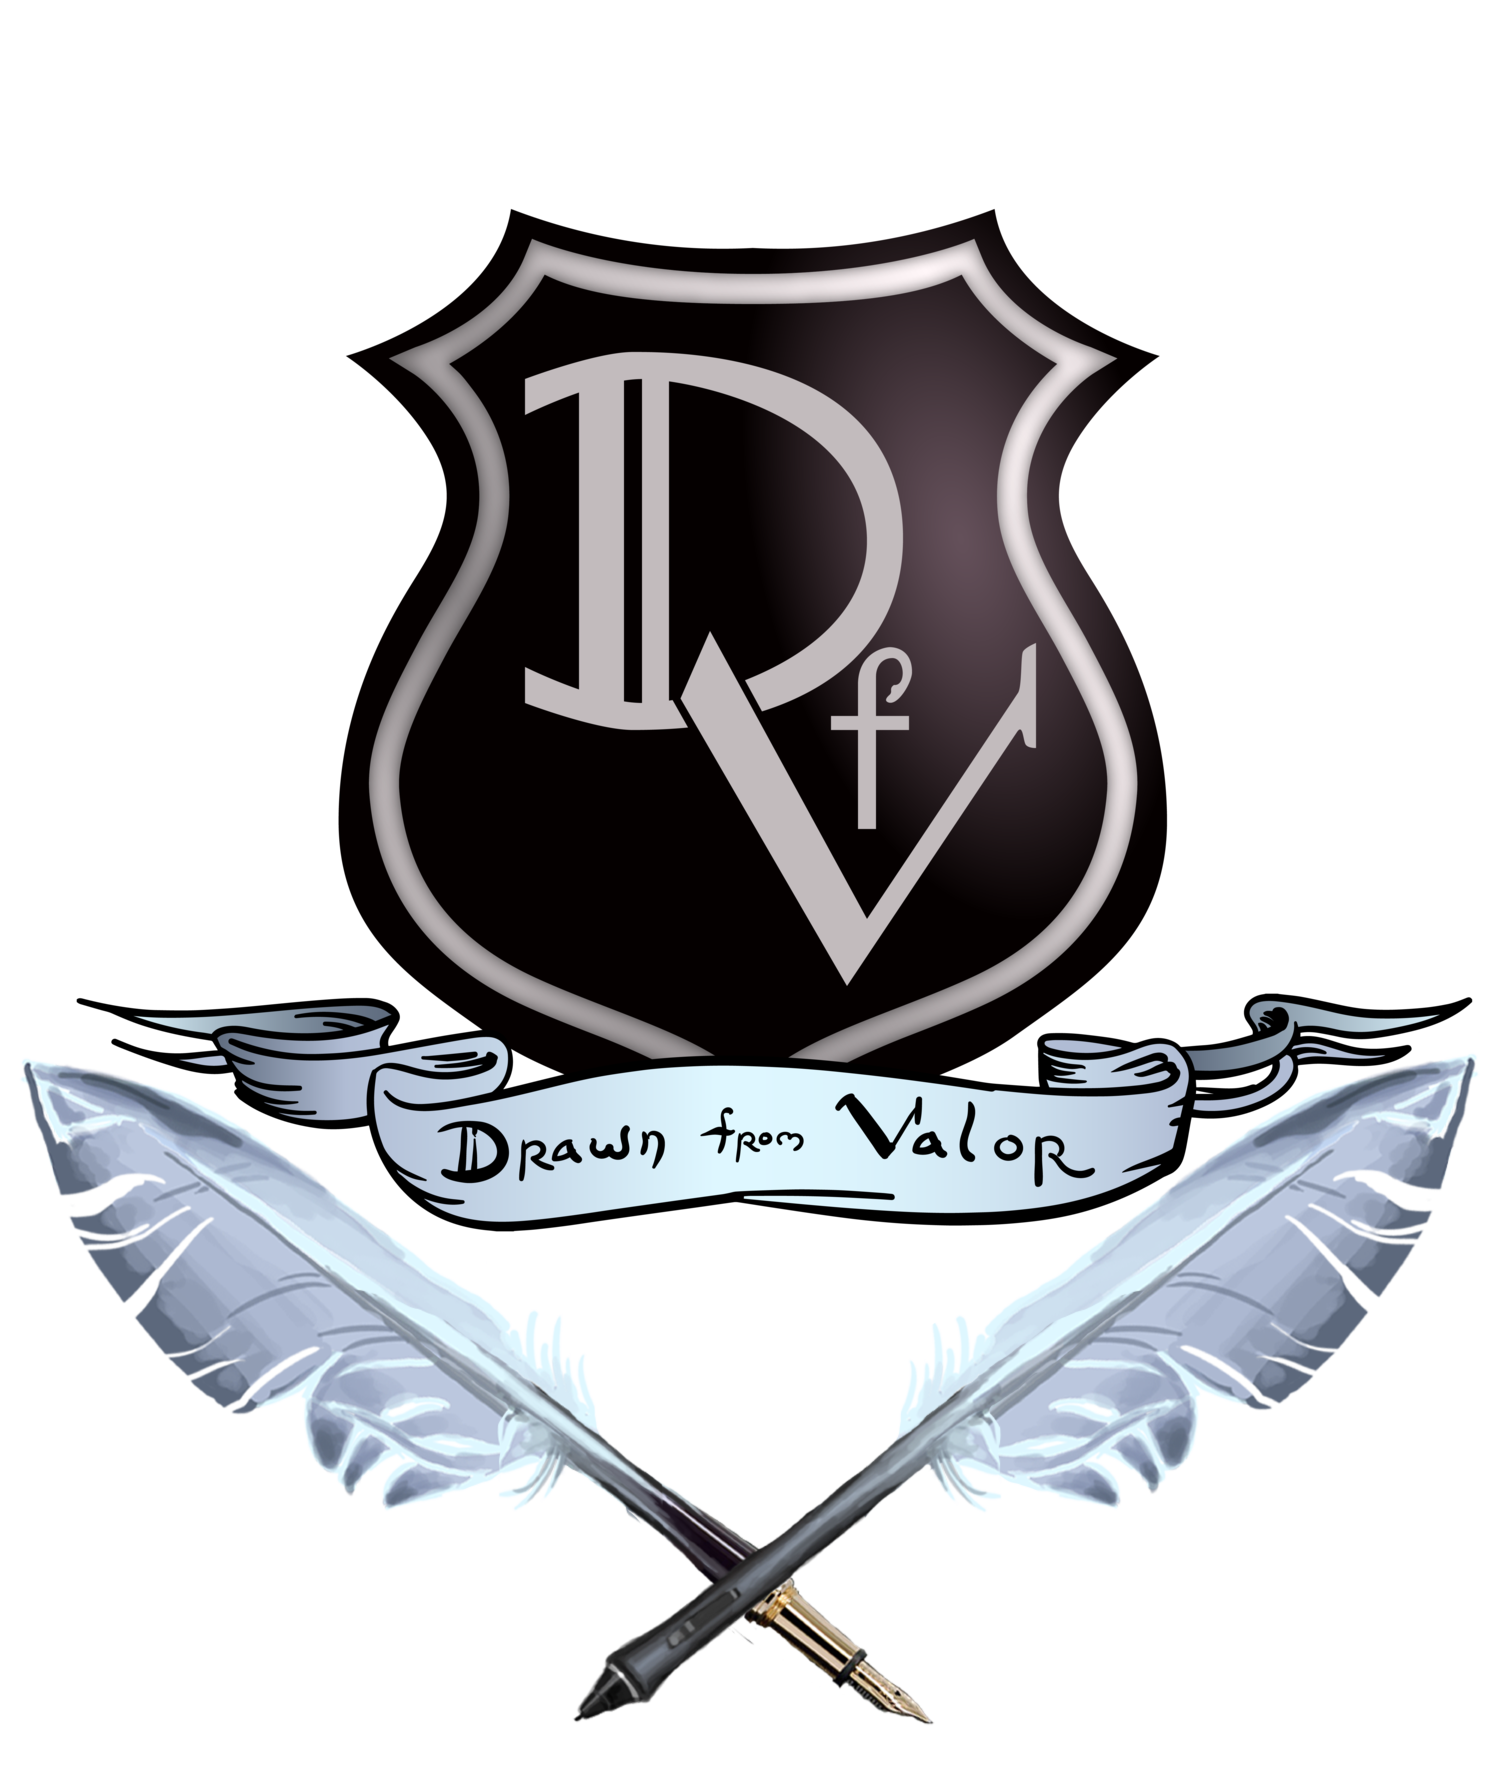 Drawn From Valor